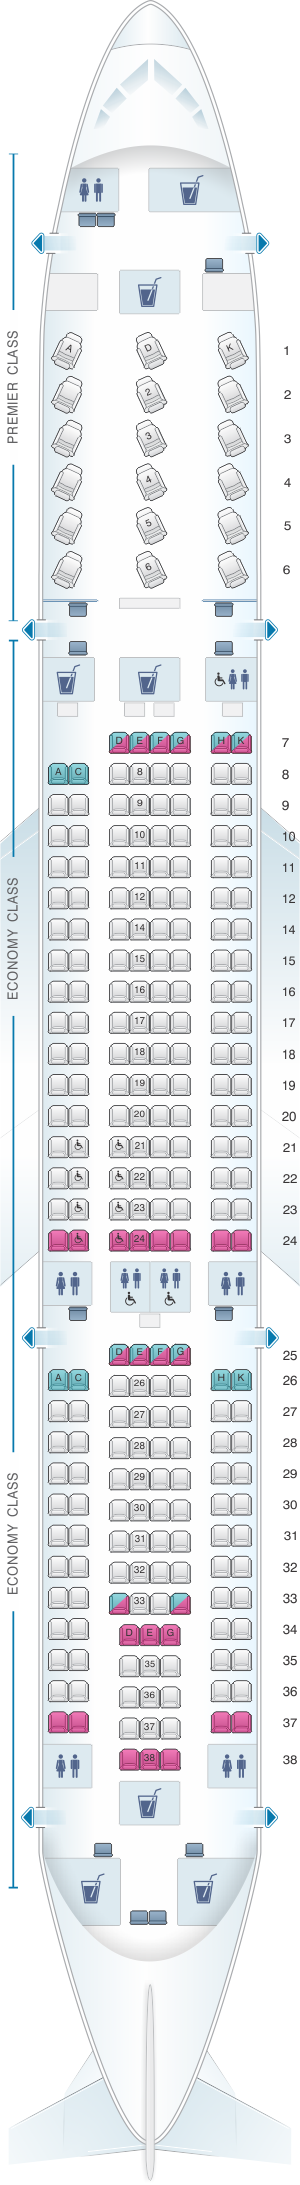 Seat map for Jet Airways Airbus A330 200 254PAX